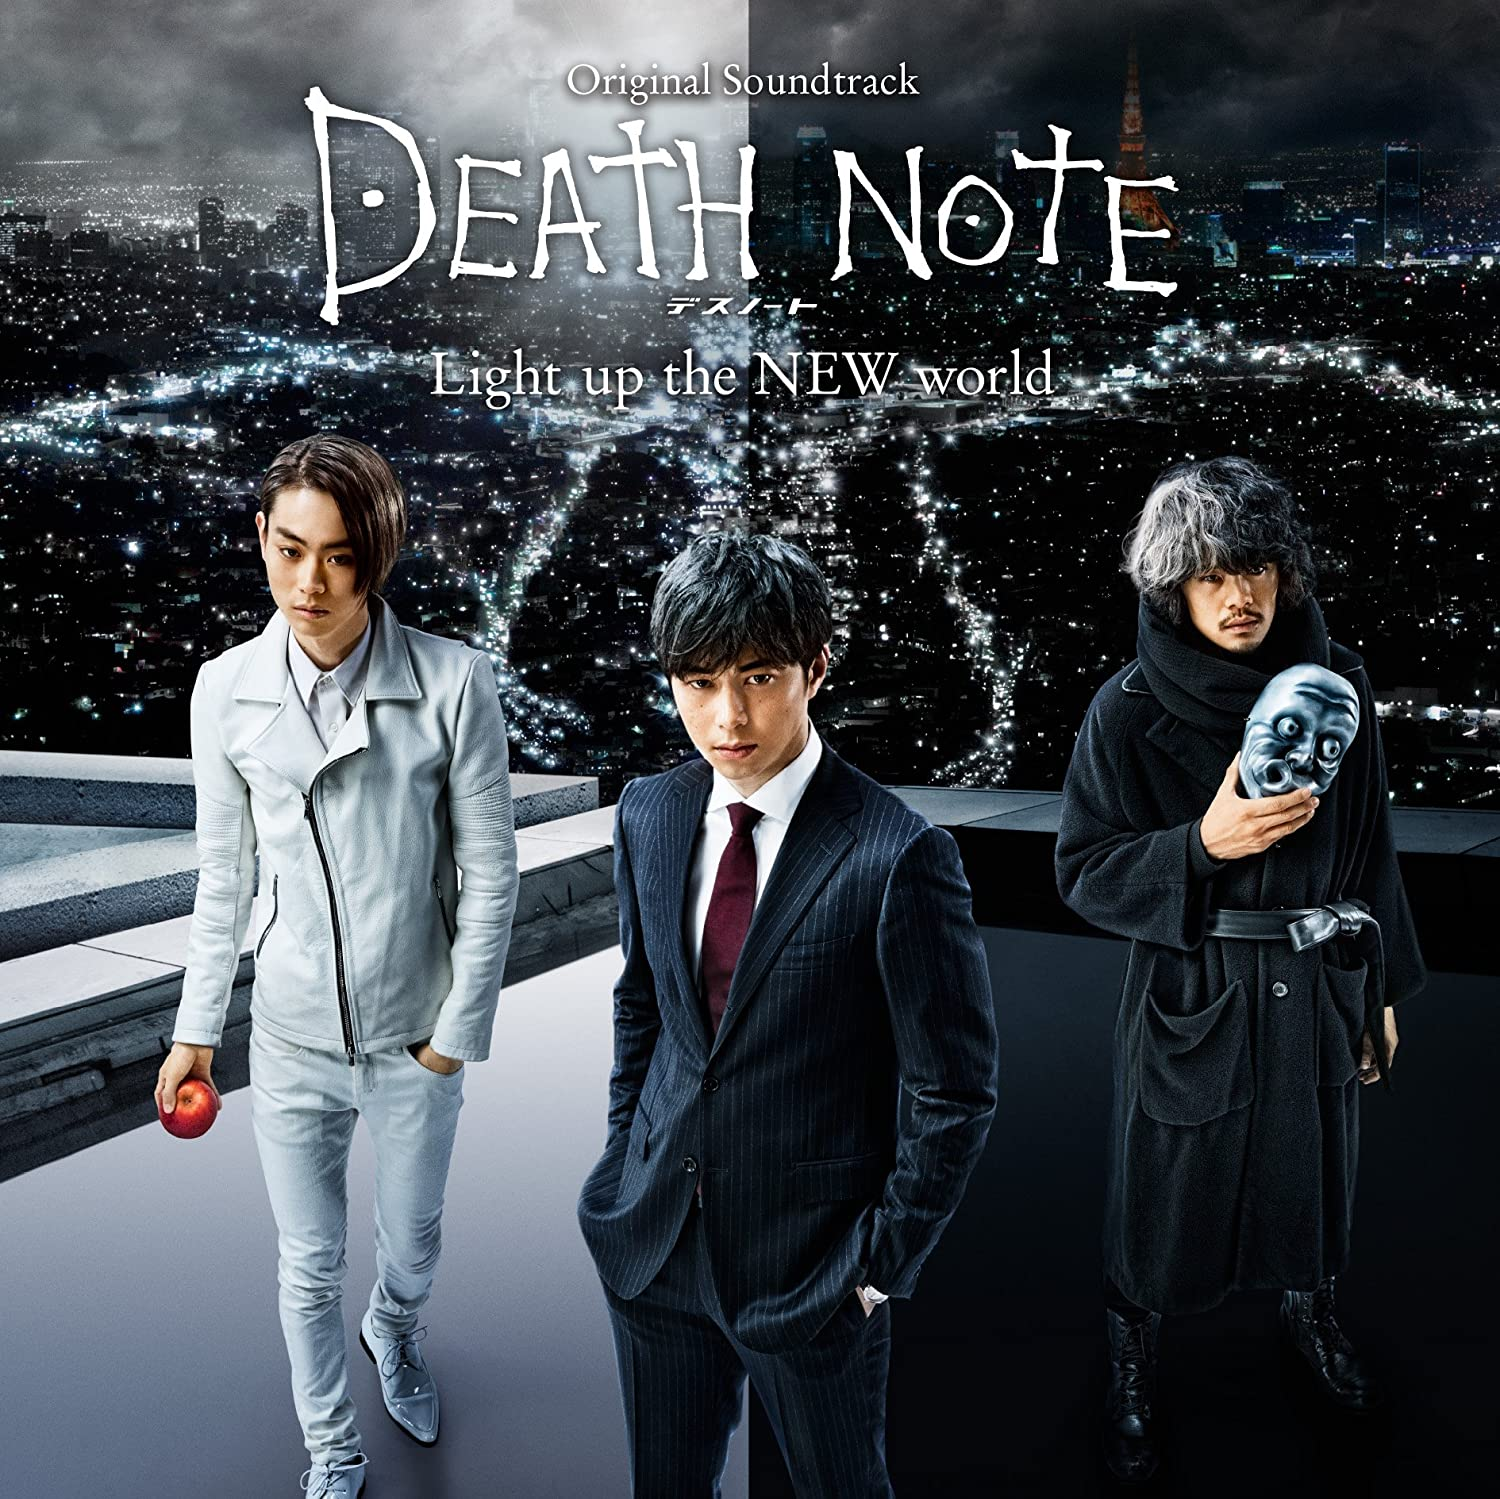 Audio Cd (Original Soundtrack) - Death Note Light Up The New World Original Soundtrack NUOVO SIGILLATO, EDIZIONE DEL 26/10/2016 SUBITO DISPONIBILE